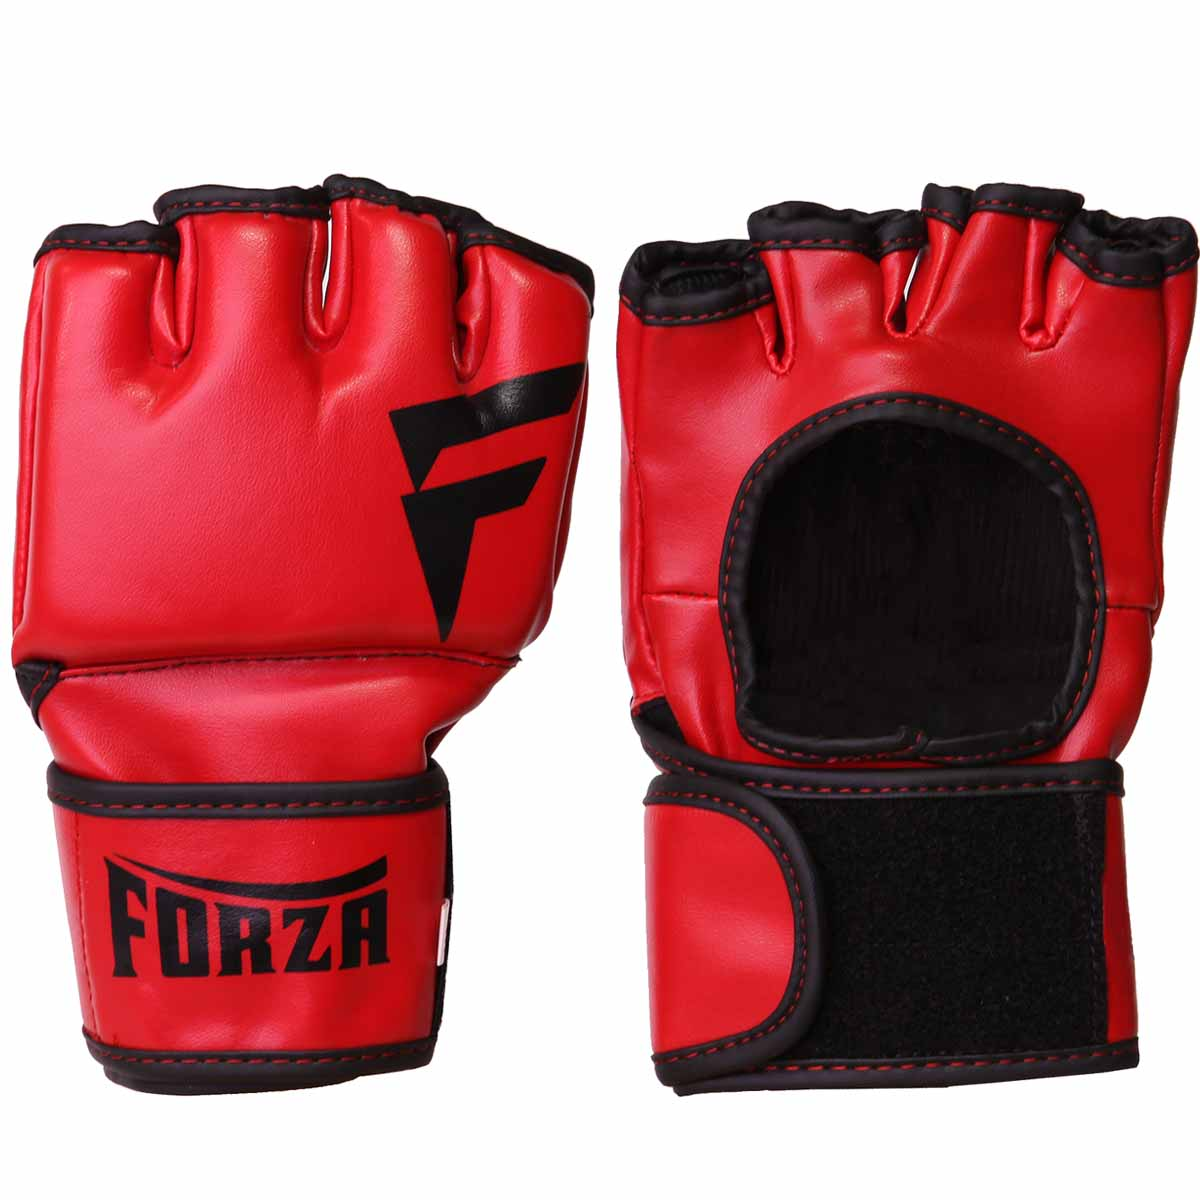 Forza Vinyl MMA Training Gloves - Red/Black